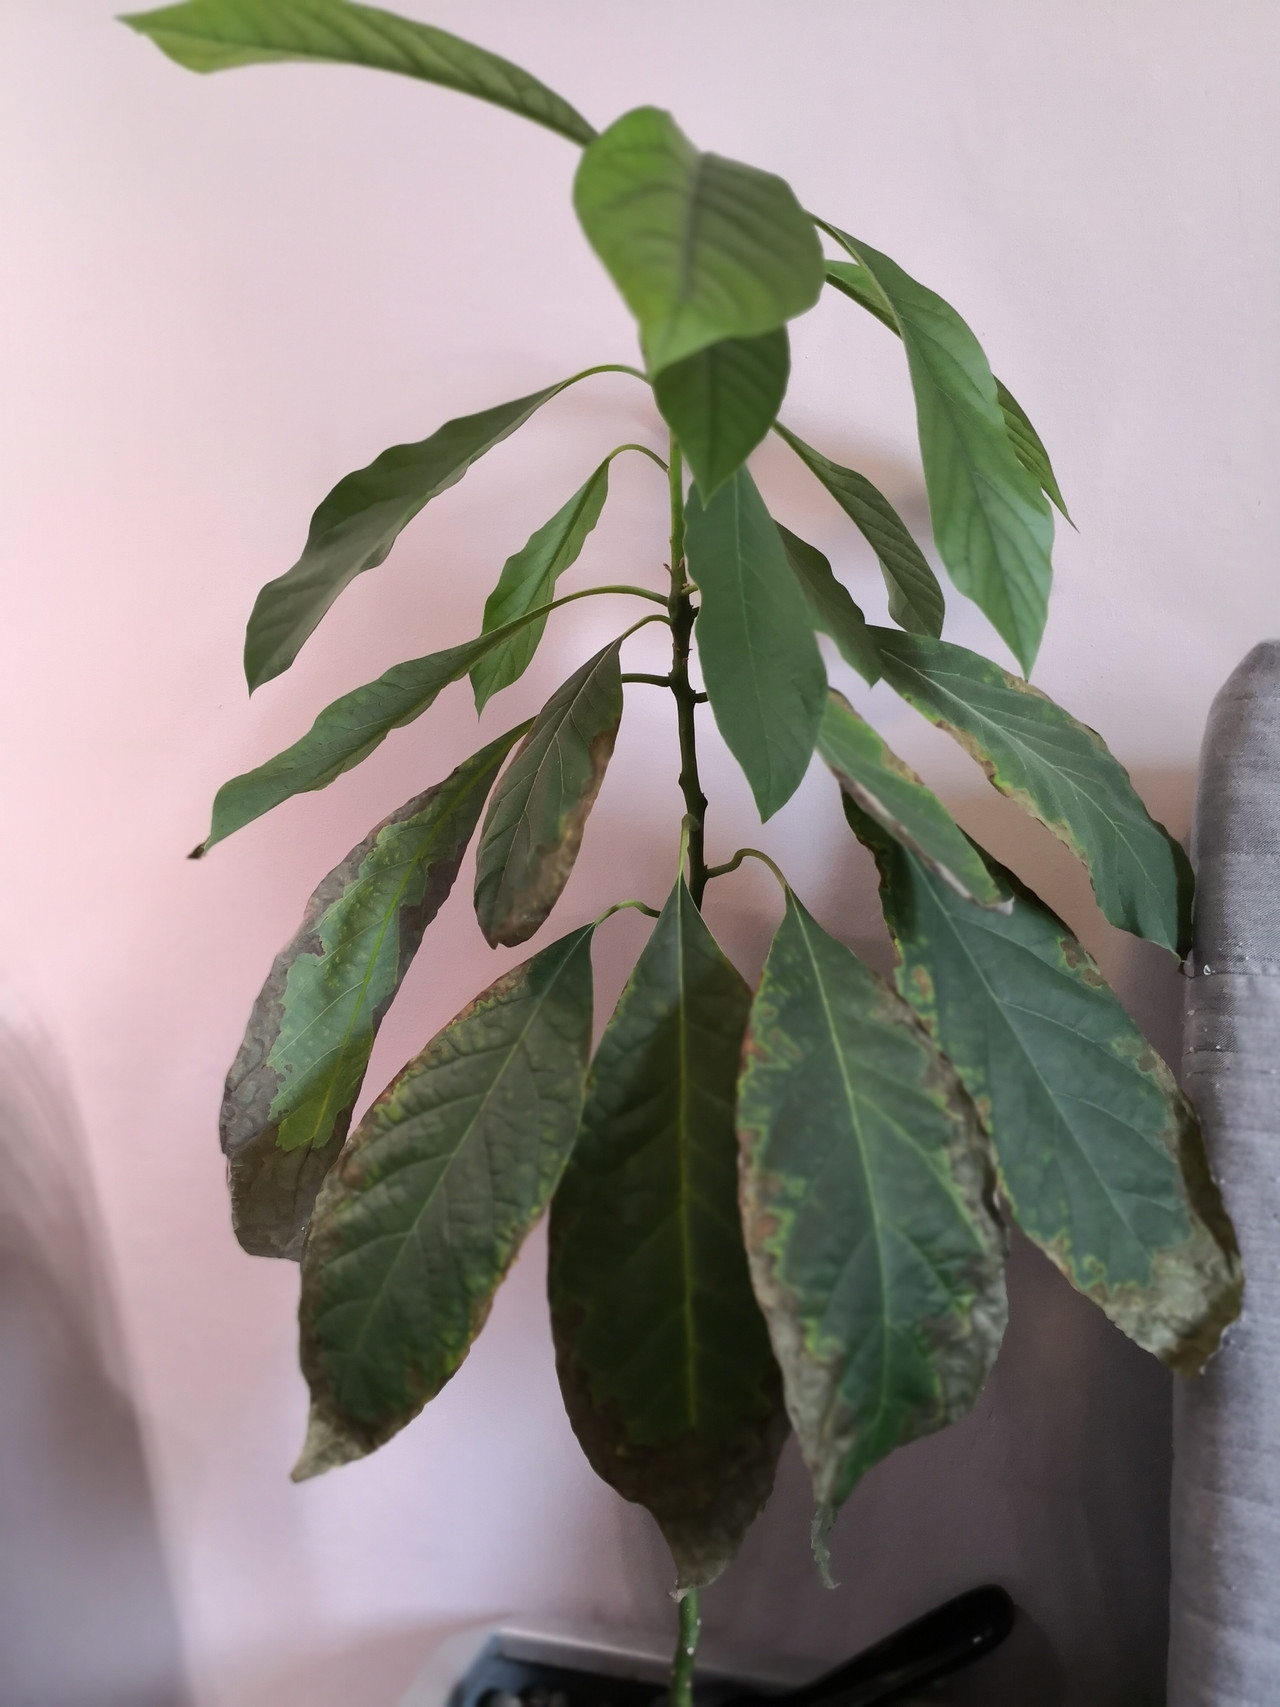 Gorgeous On A Houseplants S Avocado Houseplants Avocado Plant What Is Wrong Whole Zooming Leaves Avocado Tree Soil Avocado Tree Wilting houzz-03 Indoor Avocado Tree